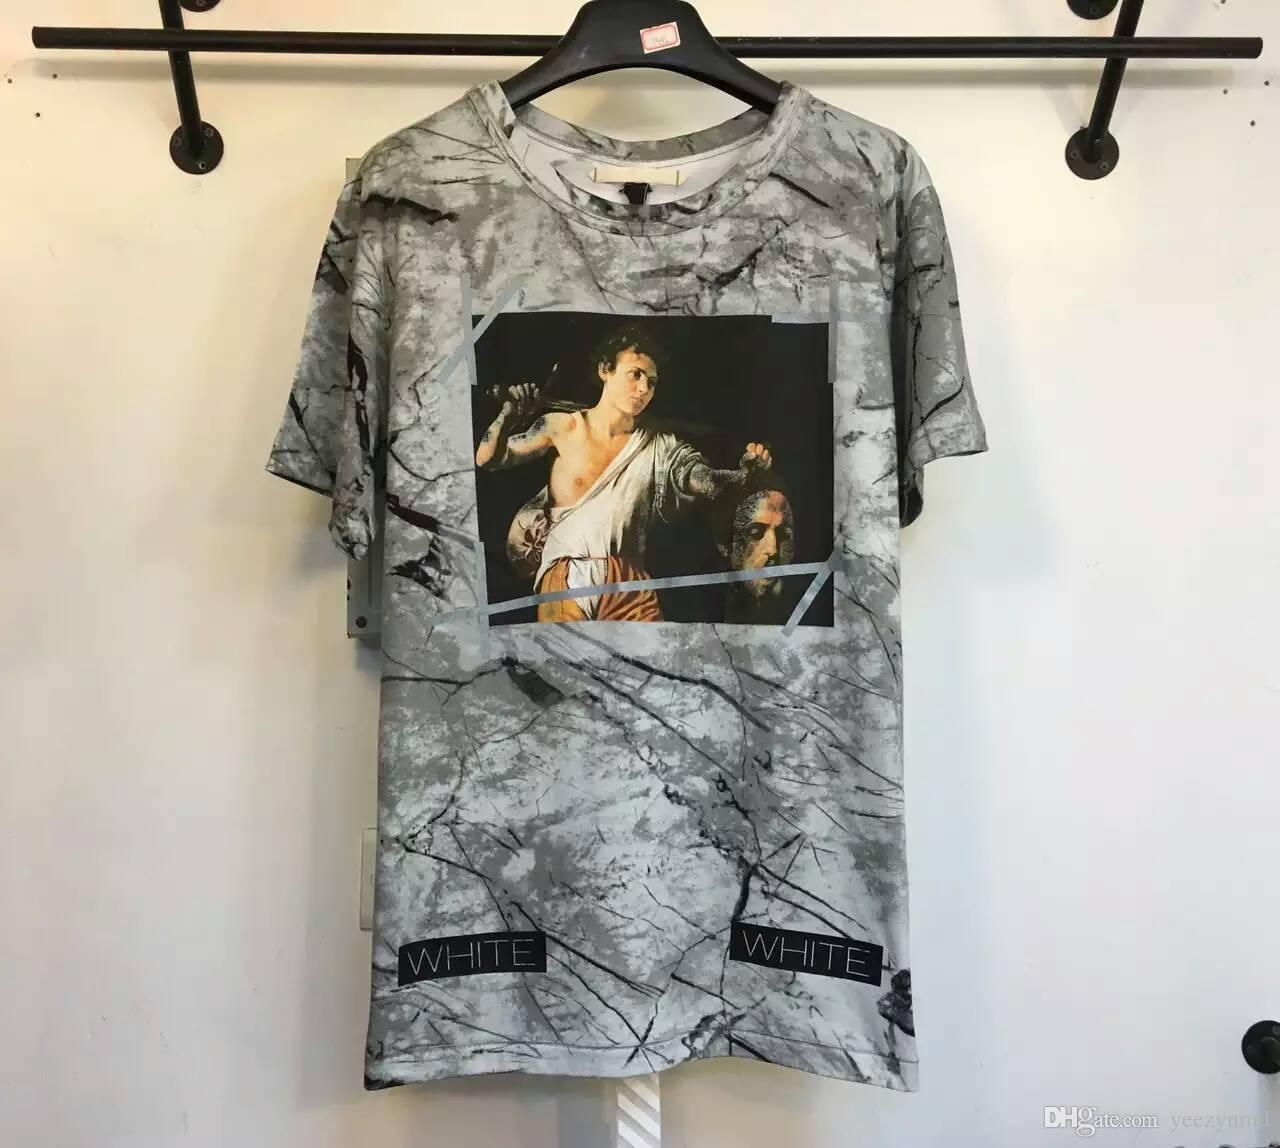 Best quality black t shirt - Top Version Off White T Shirts Summer 16 Ss Ow Off White T Shirts Brand Best Edition Print Cotton T Shirt Men Short Tee Hight Quality Graphic T Shirts